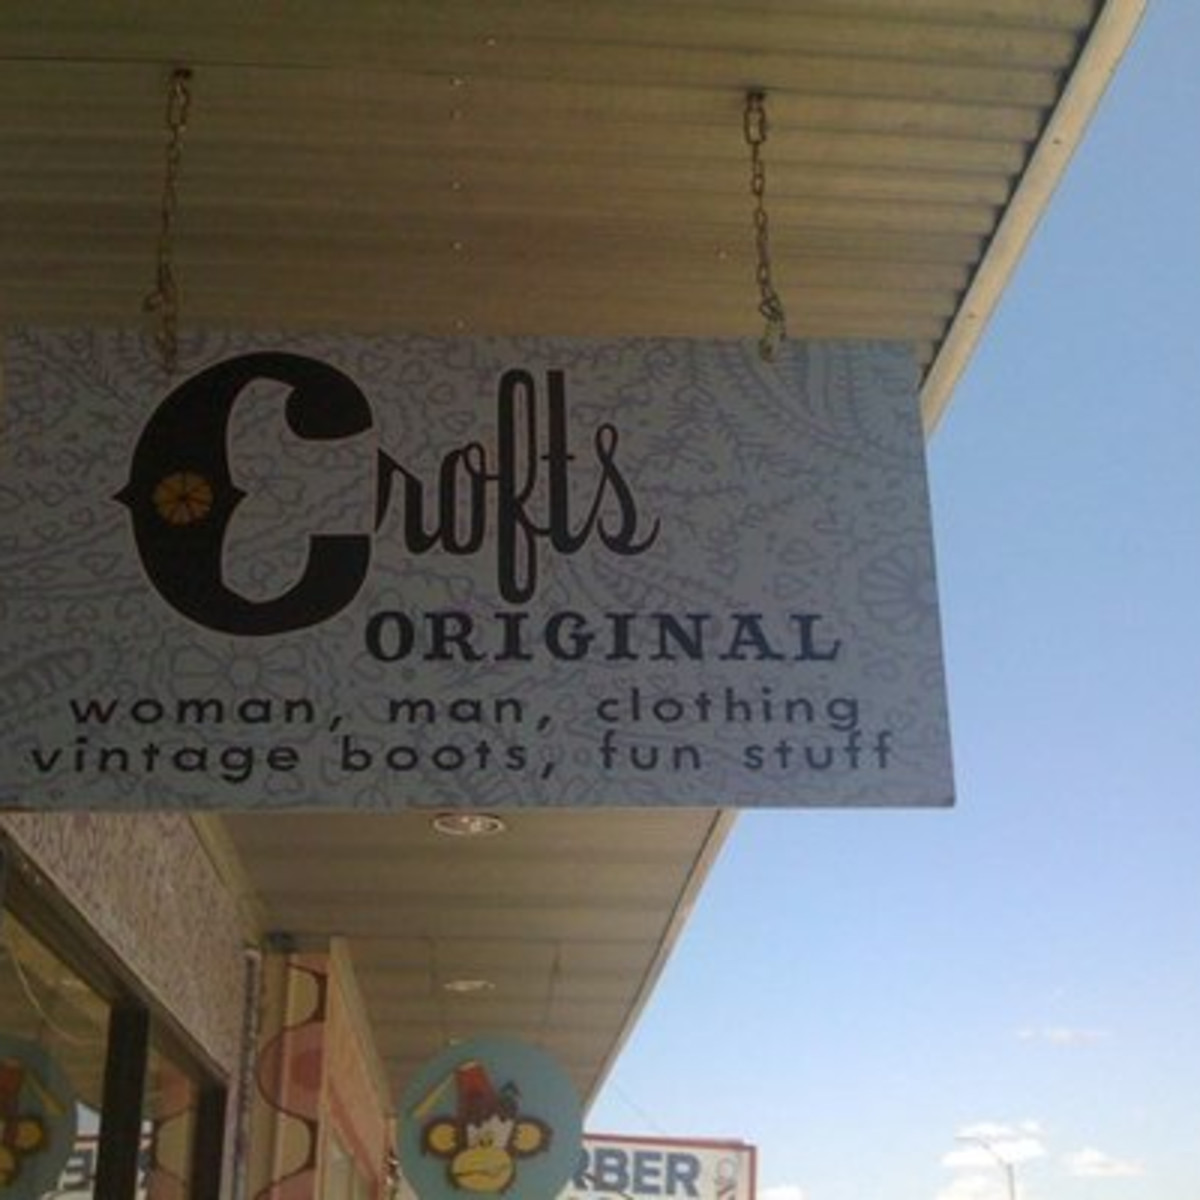 Austin Photo: Places_shopping_crofts_original_exterior